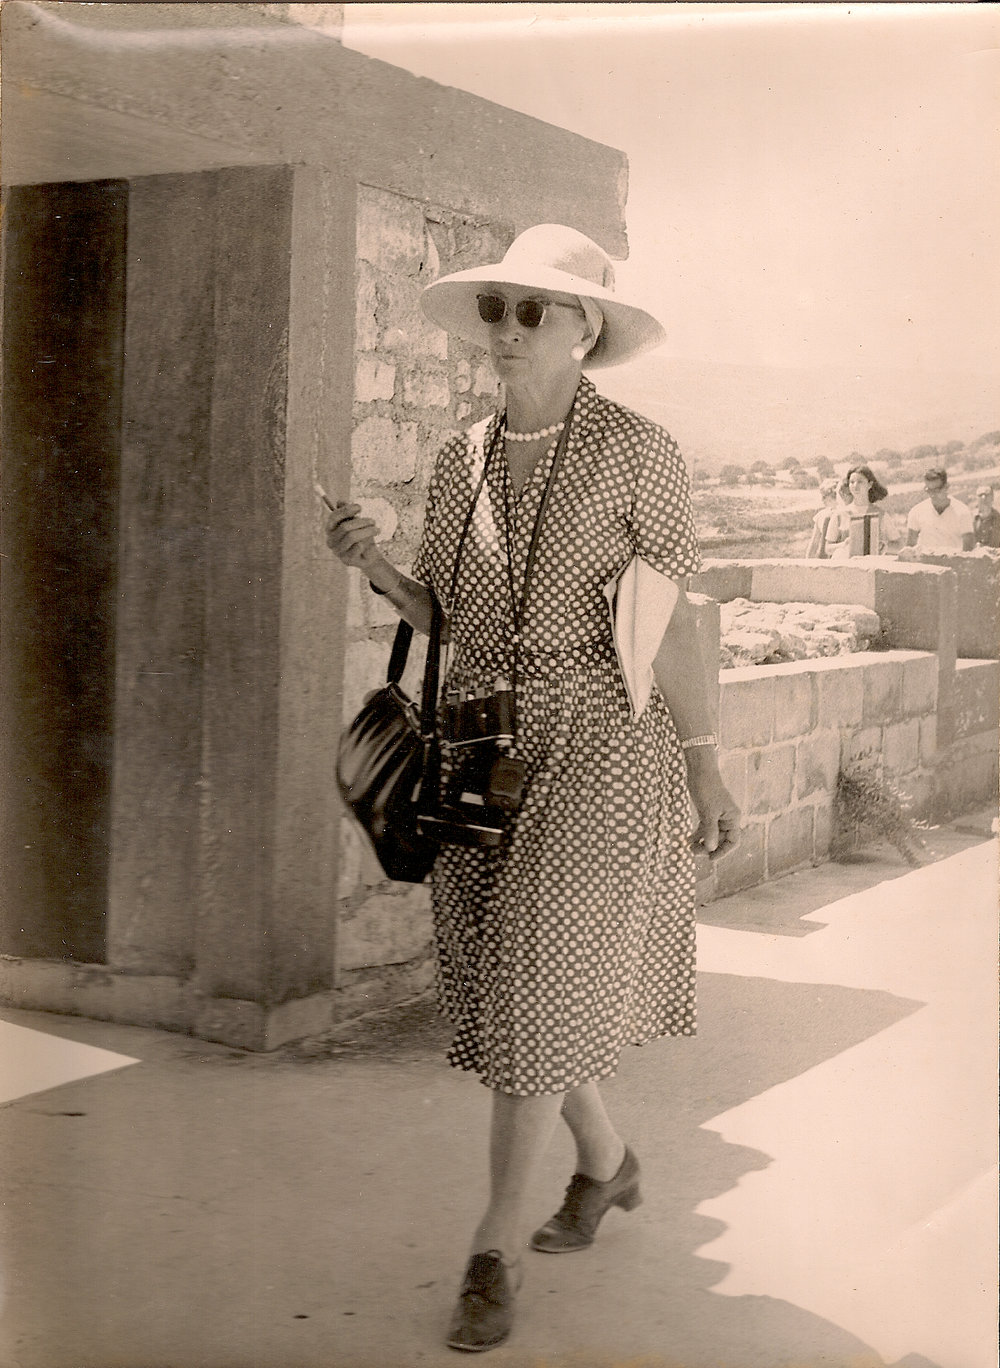 A world traveler late in life - Ann Riley exploring antiquity in Greece.